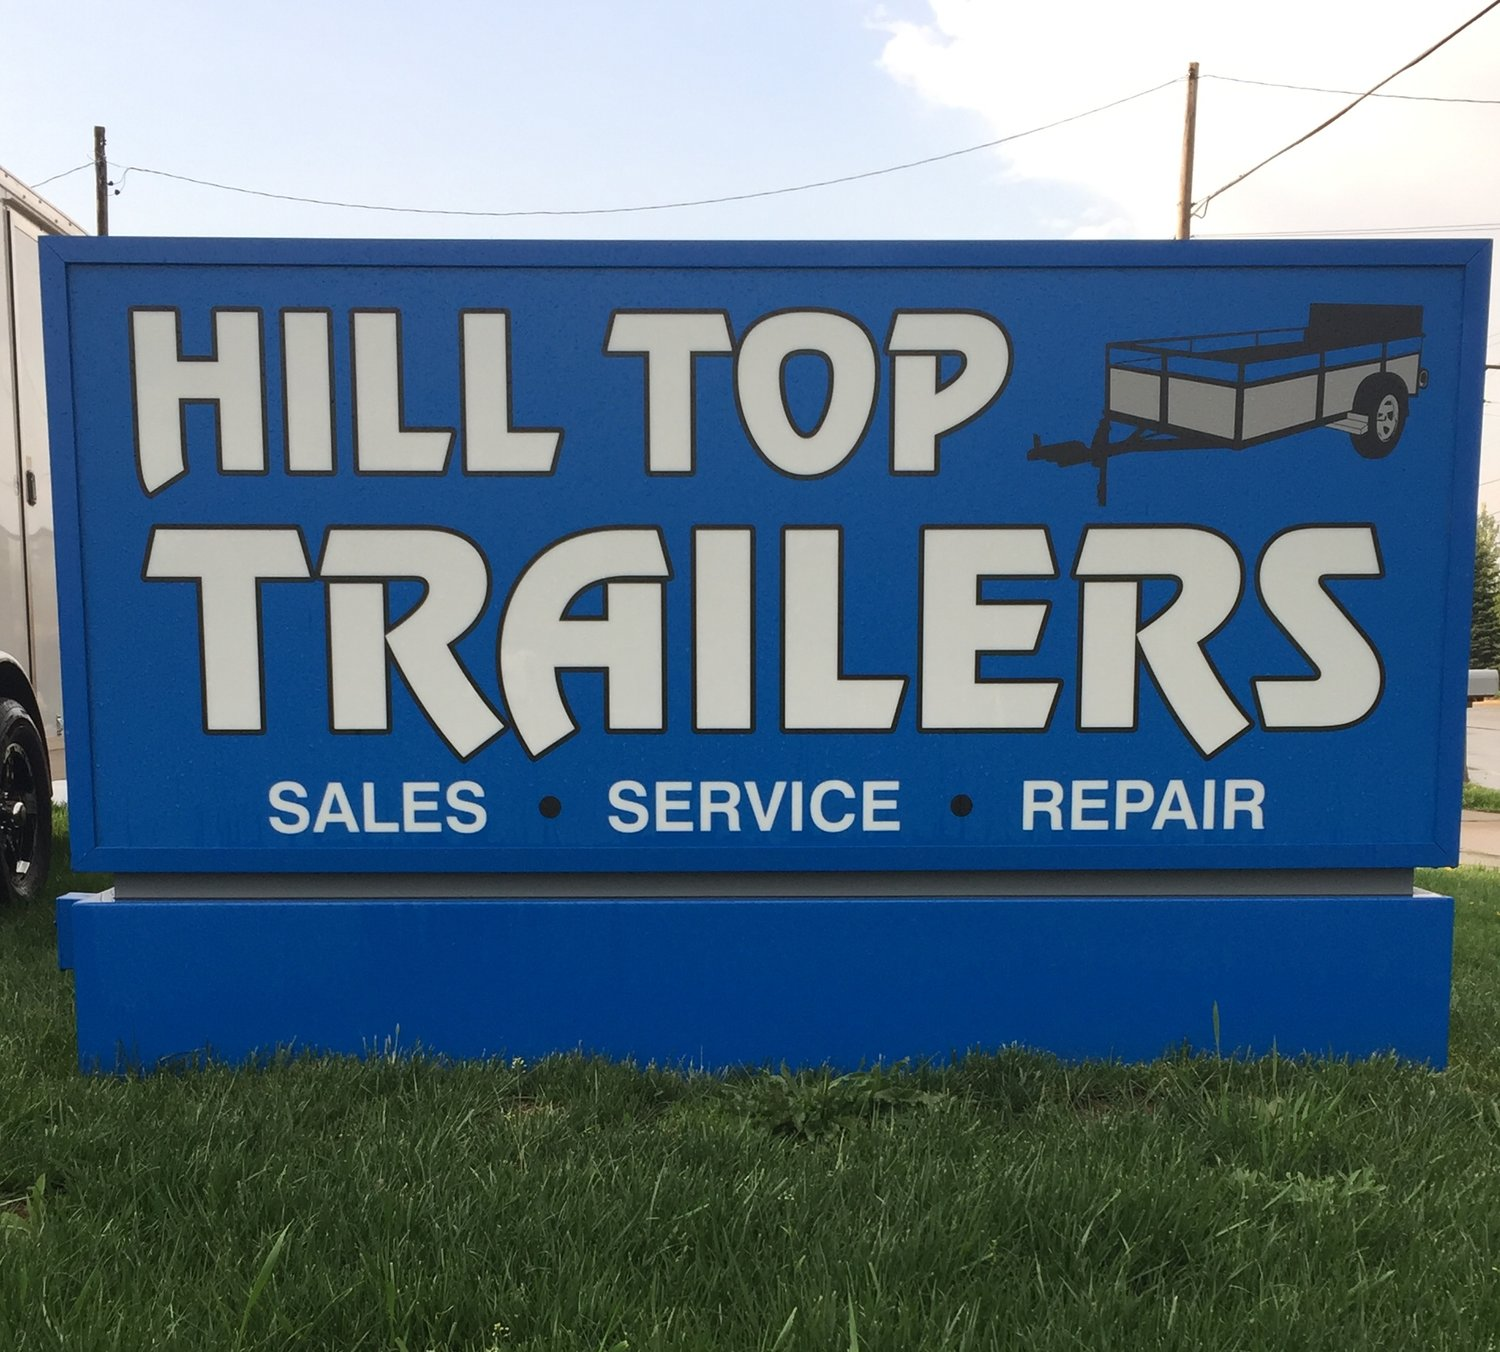 HILL TOP TRAILER SALES